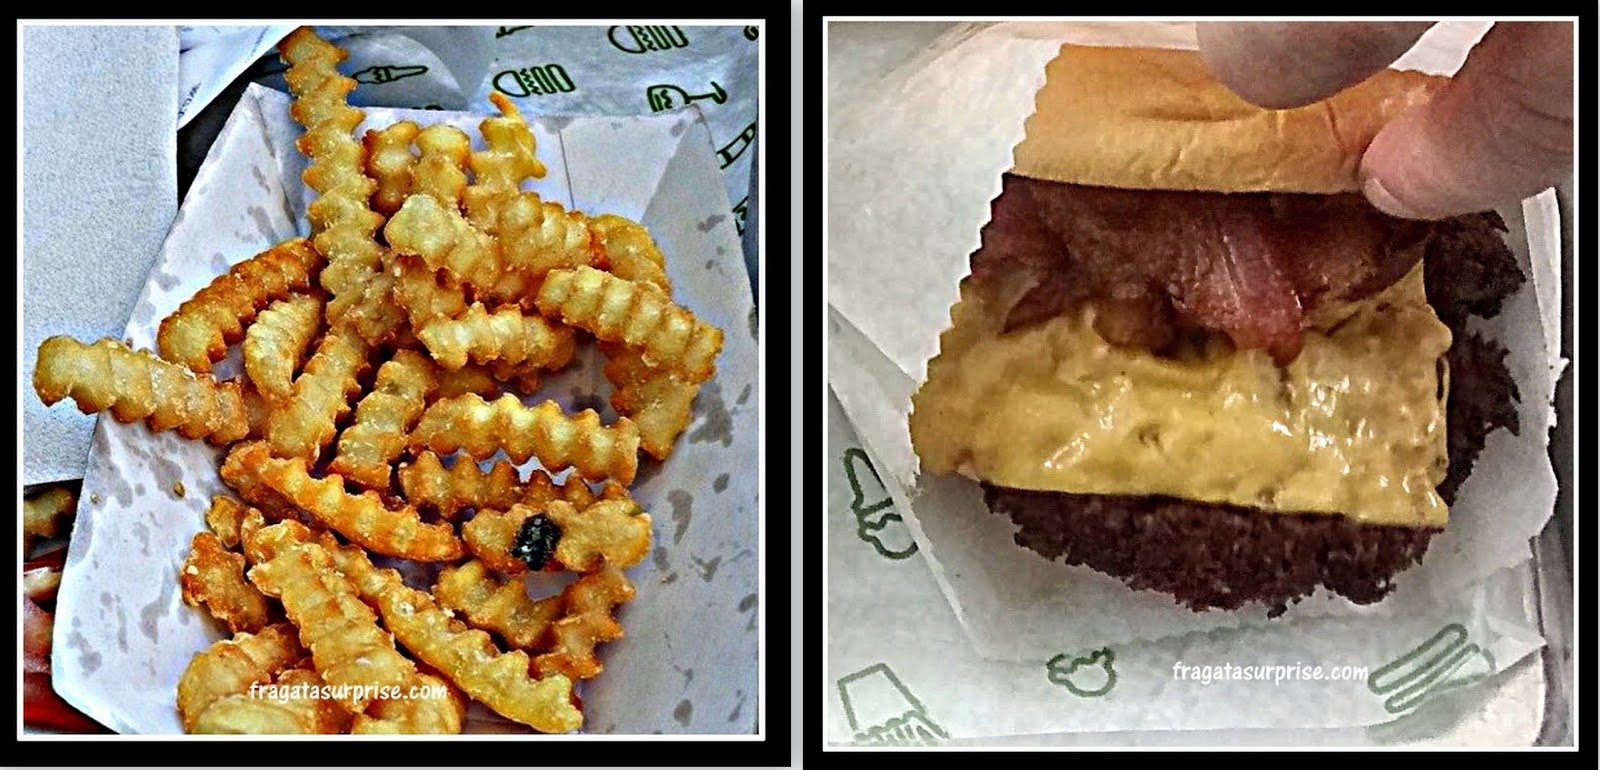 Londres - Hambúrguer e batatas fritas do Shake Shack de Covent Garde